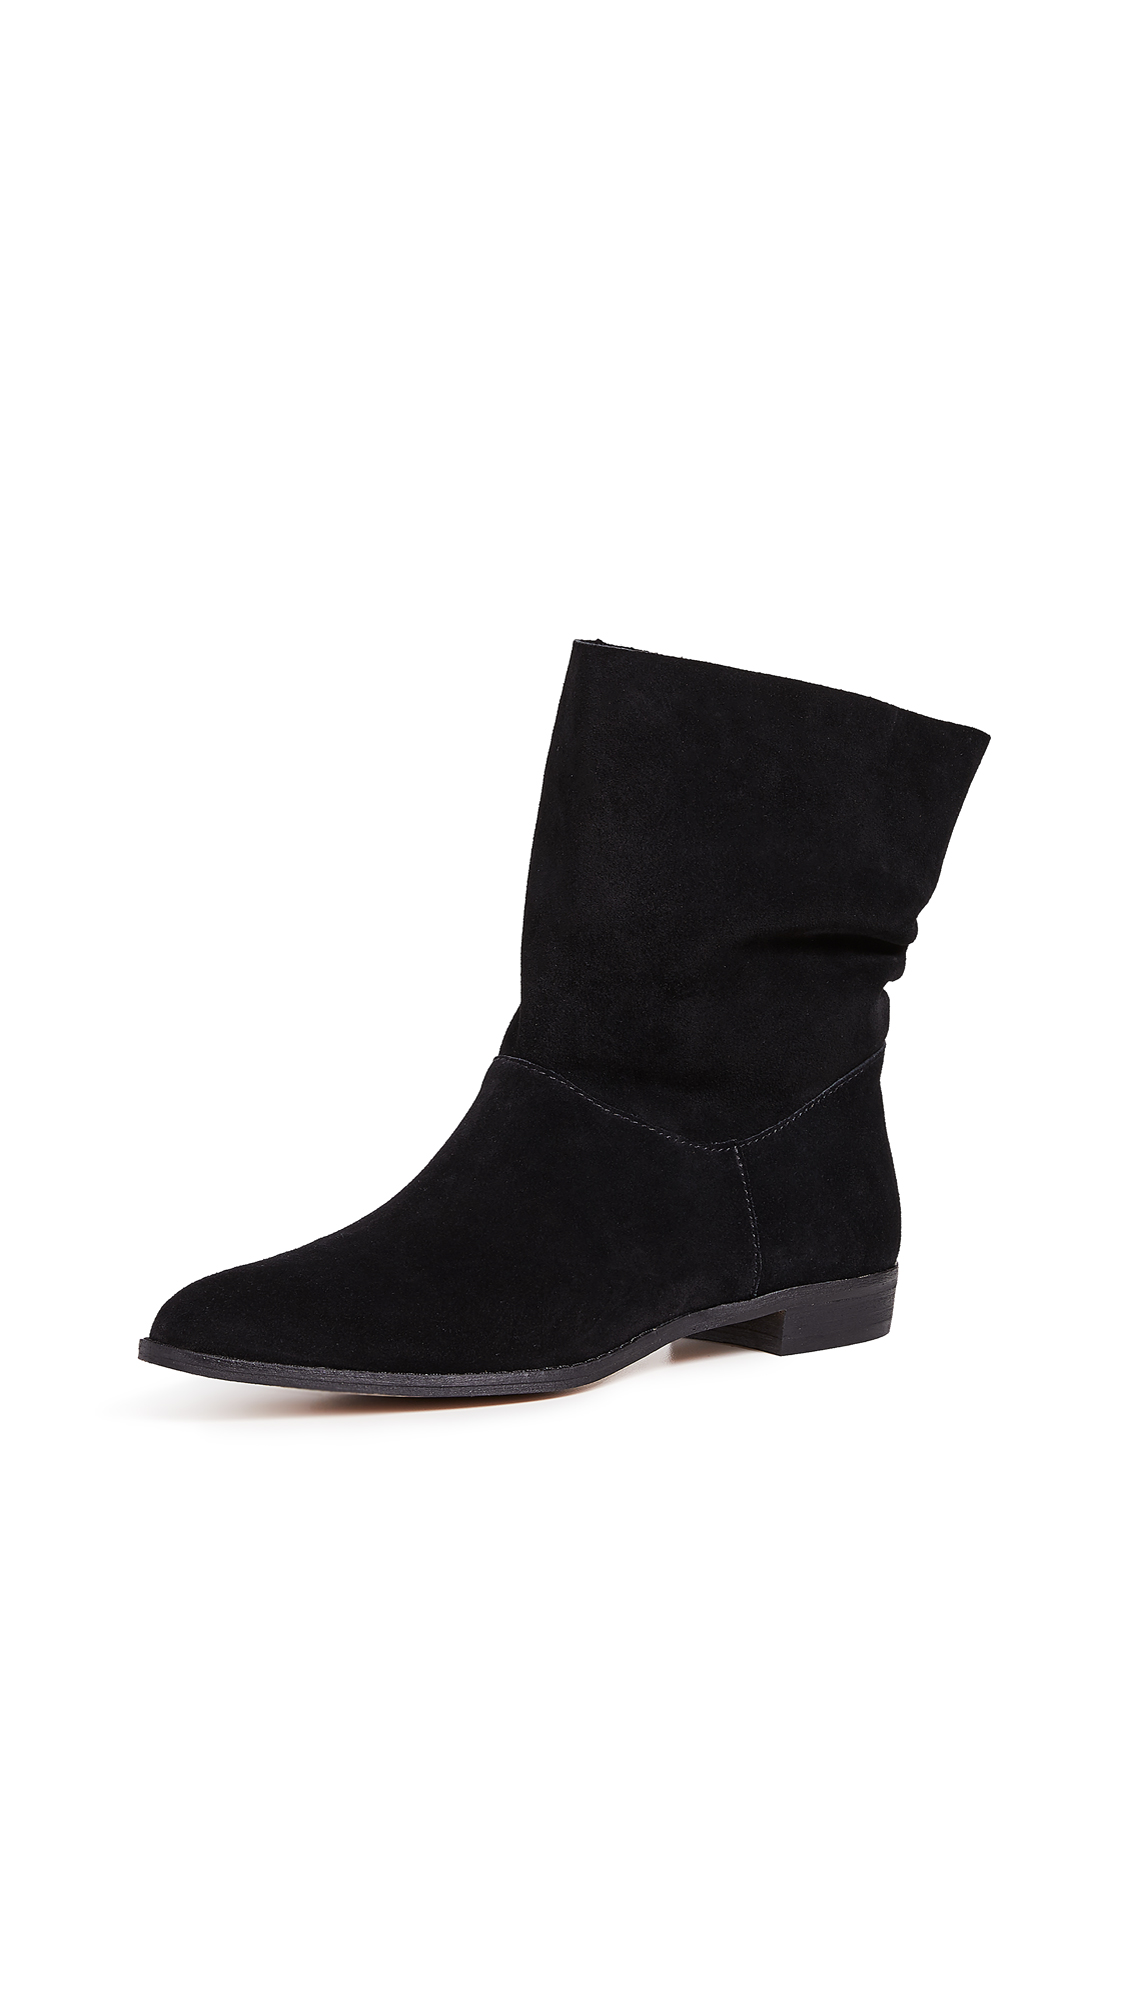 Splendid Claudia Booties - Black